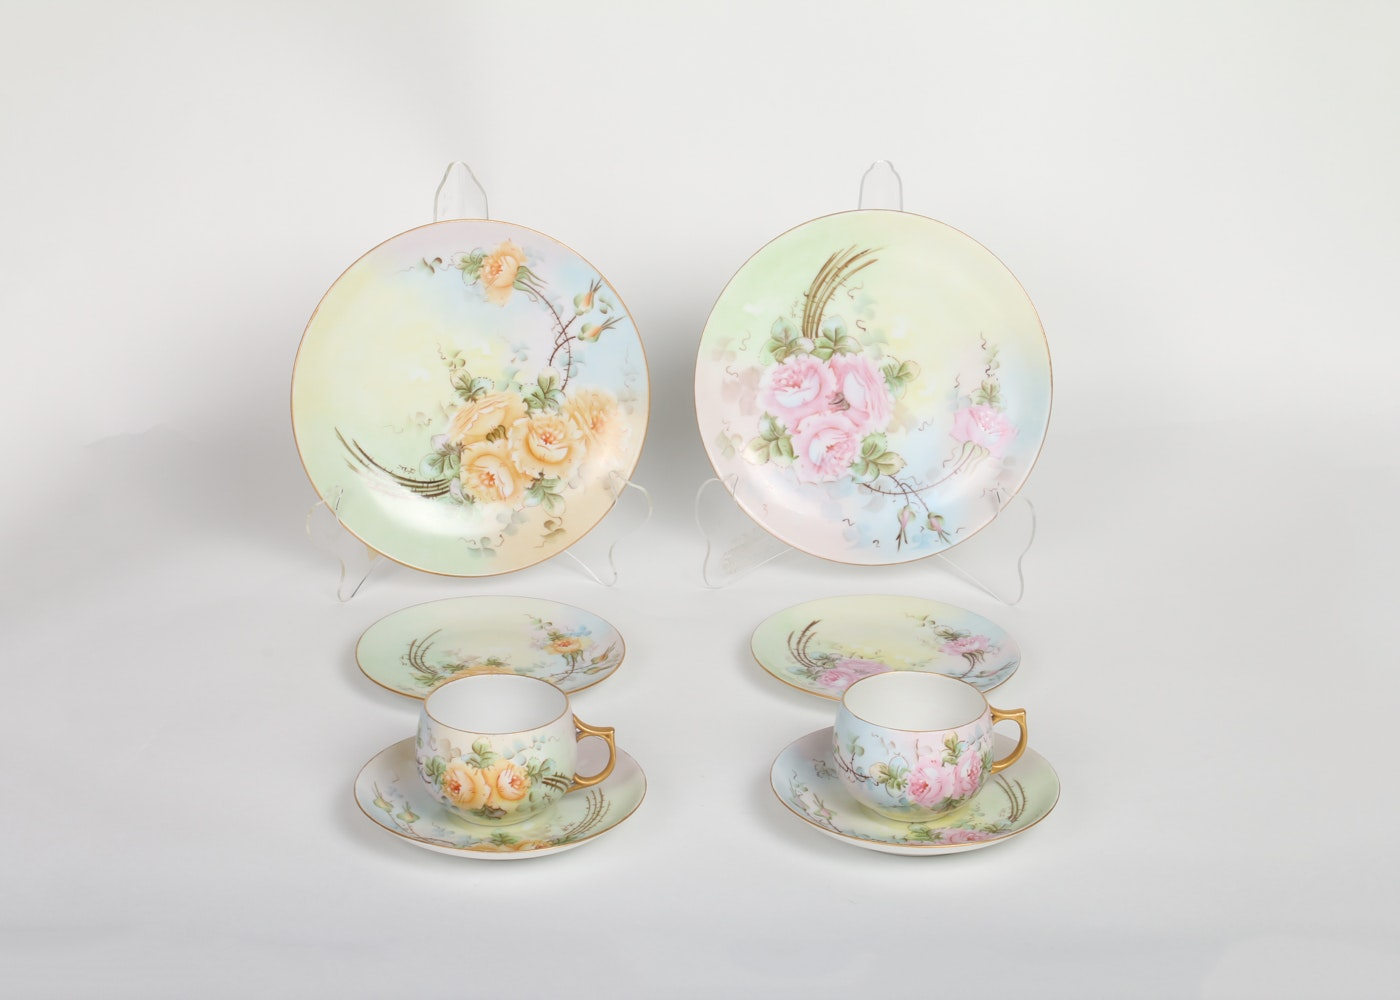 Sets of Hand-Painted China Luncheon Dishes